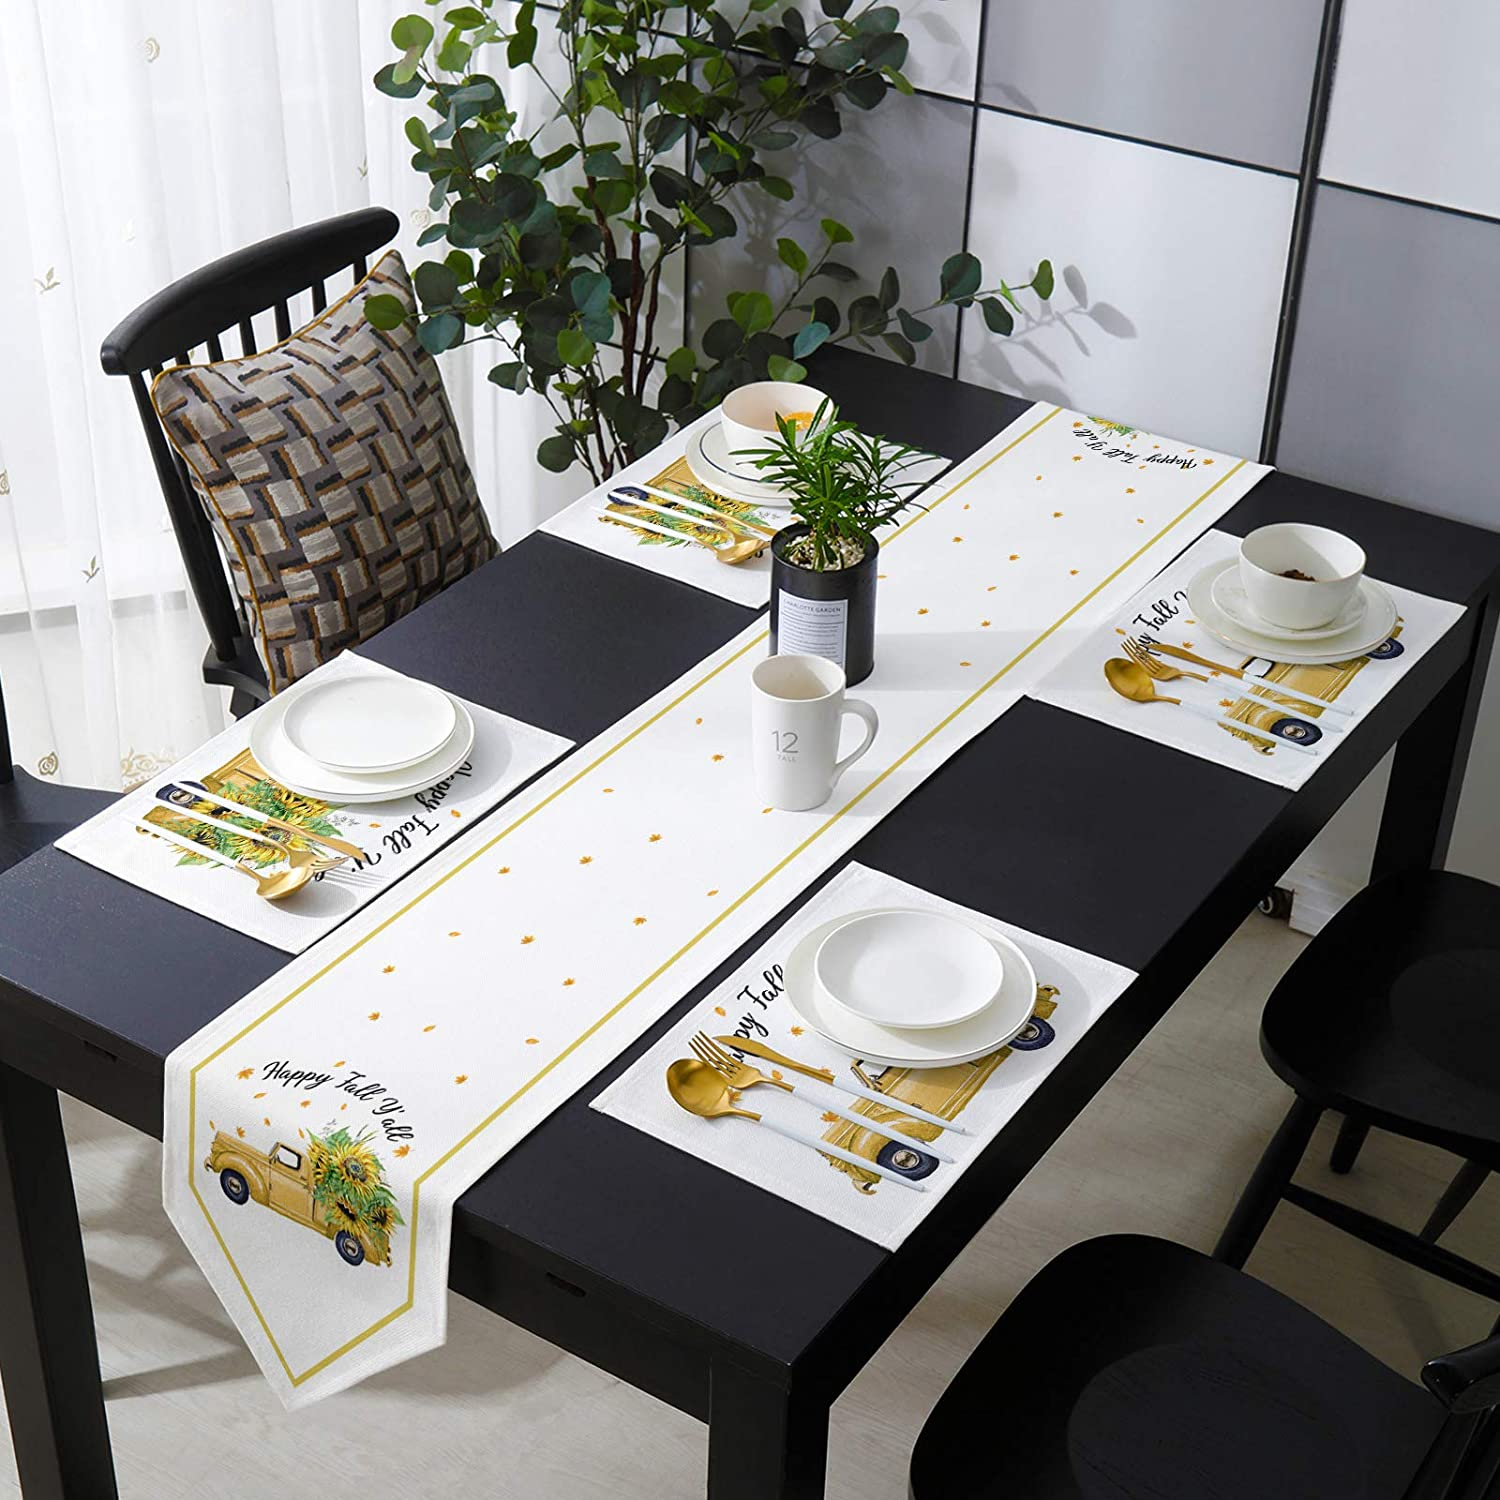 COLORSUM Burlap Table Runner Sets Y'all Placemat trend rank with Ranking TOP6 Fall Happy